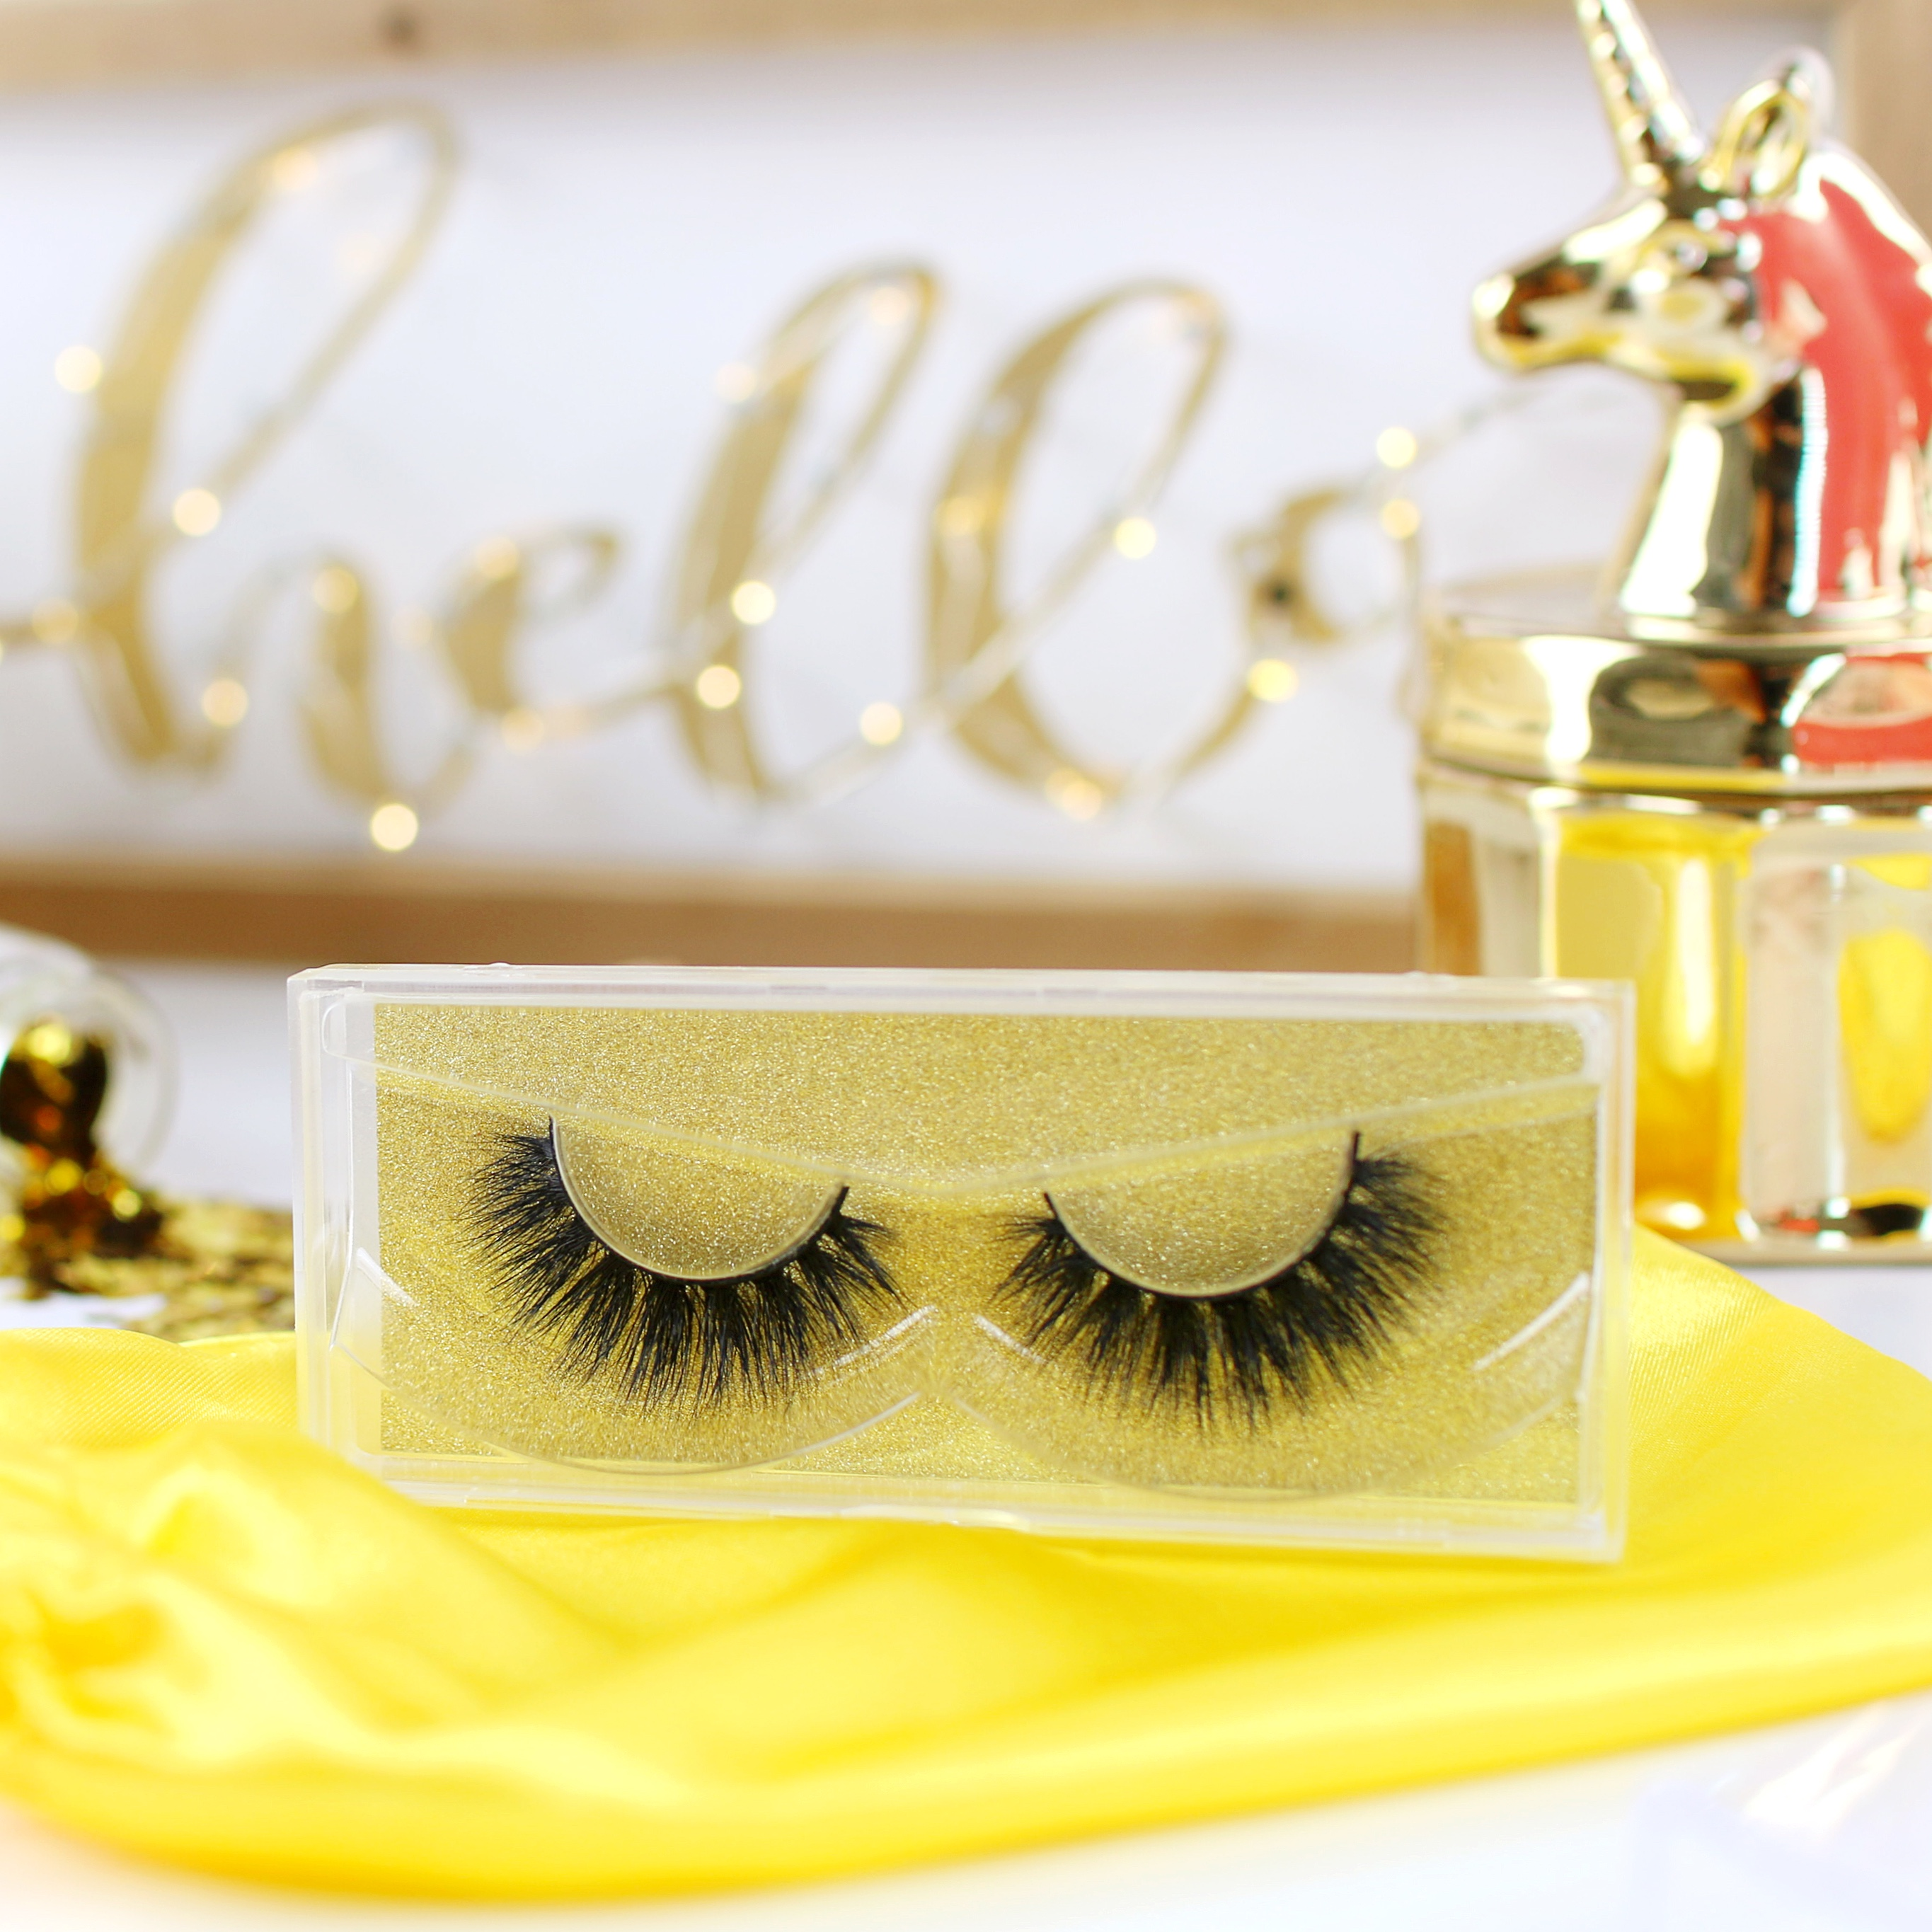 Private Label Mink Lashes – Private Label Extensions Review!